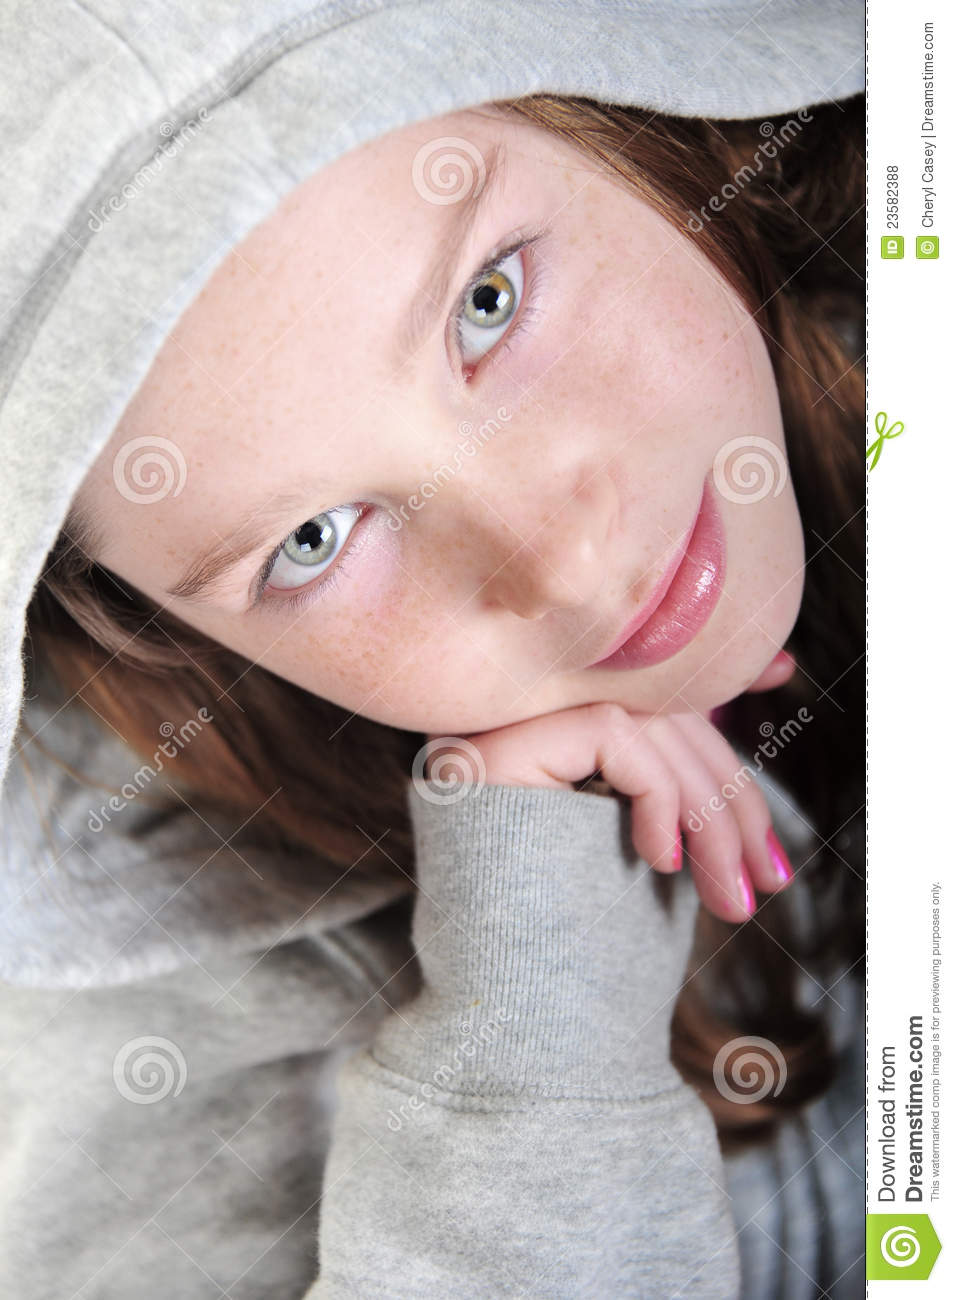 Girl leaning on hand